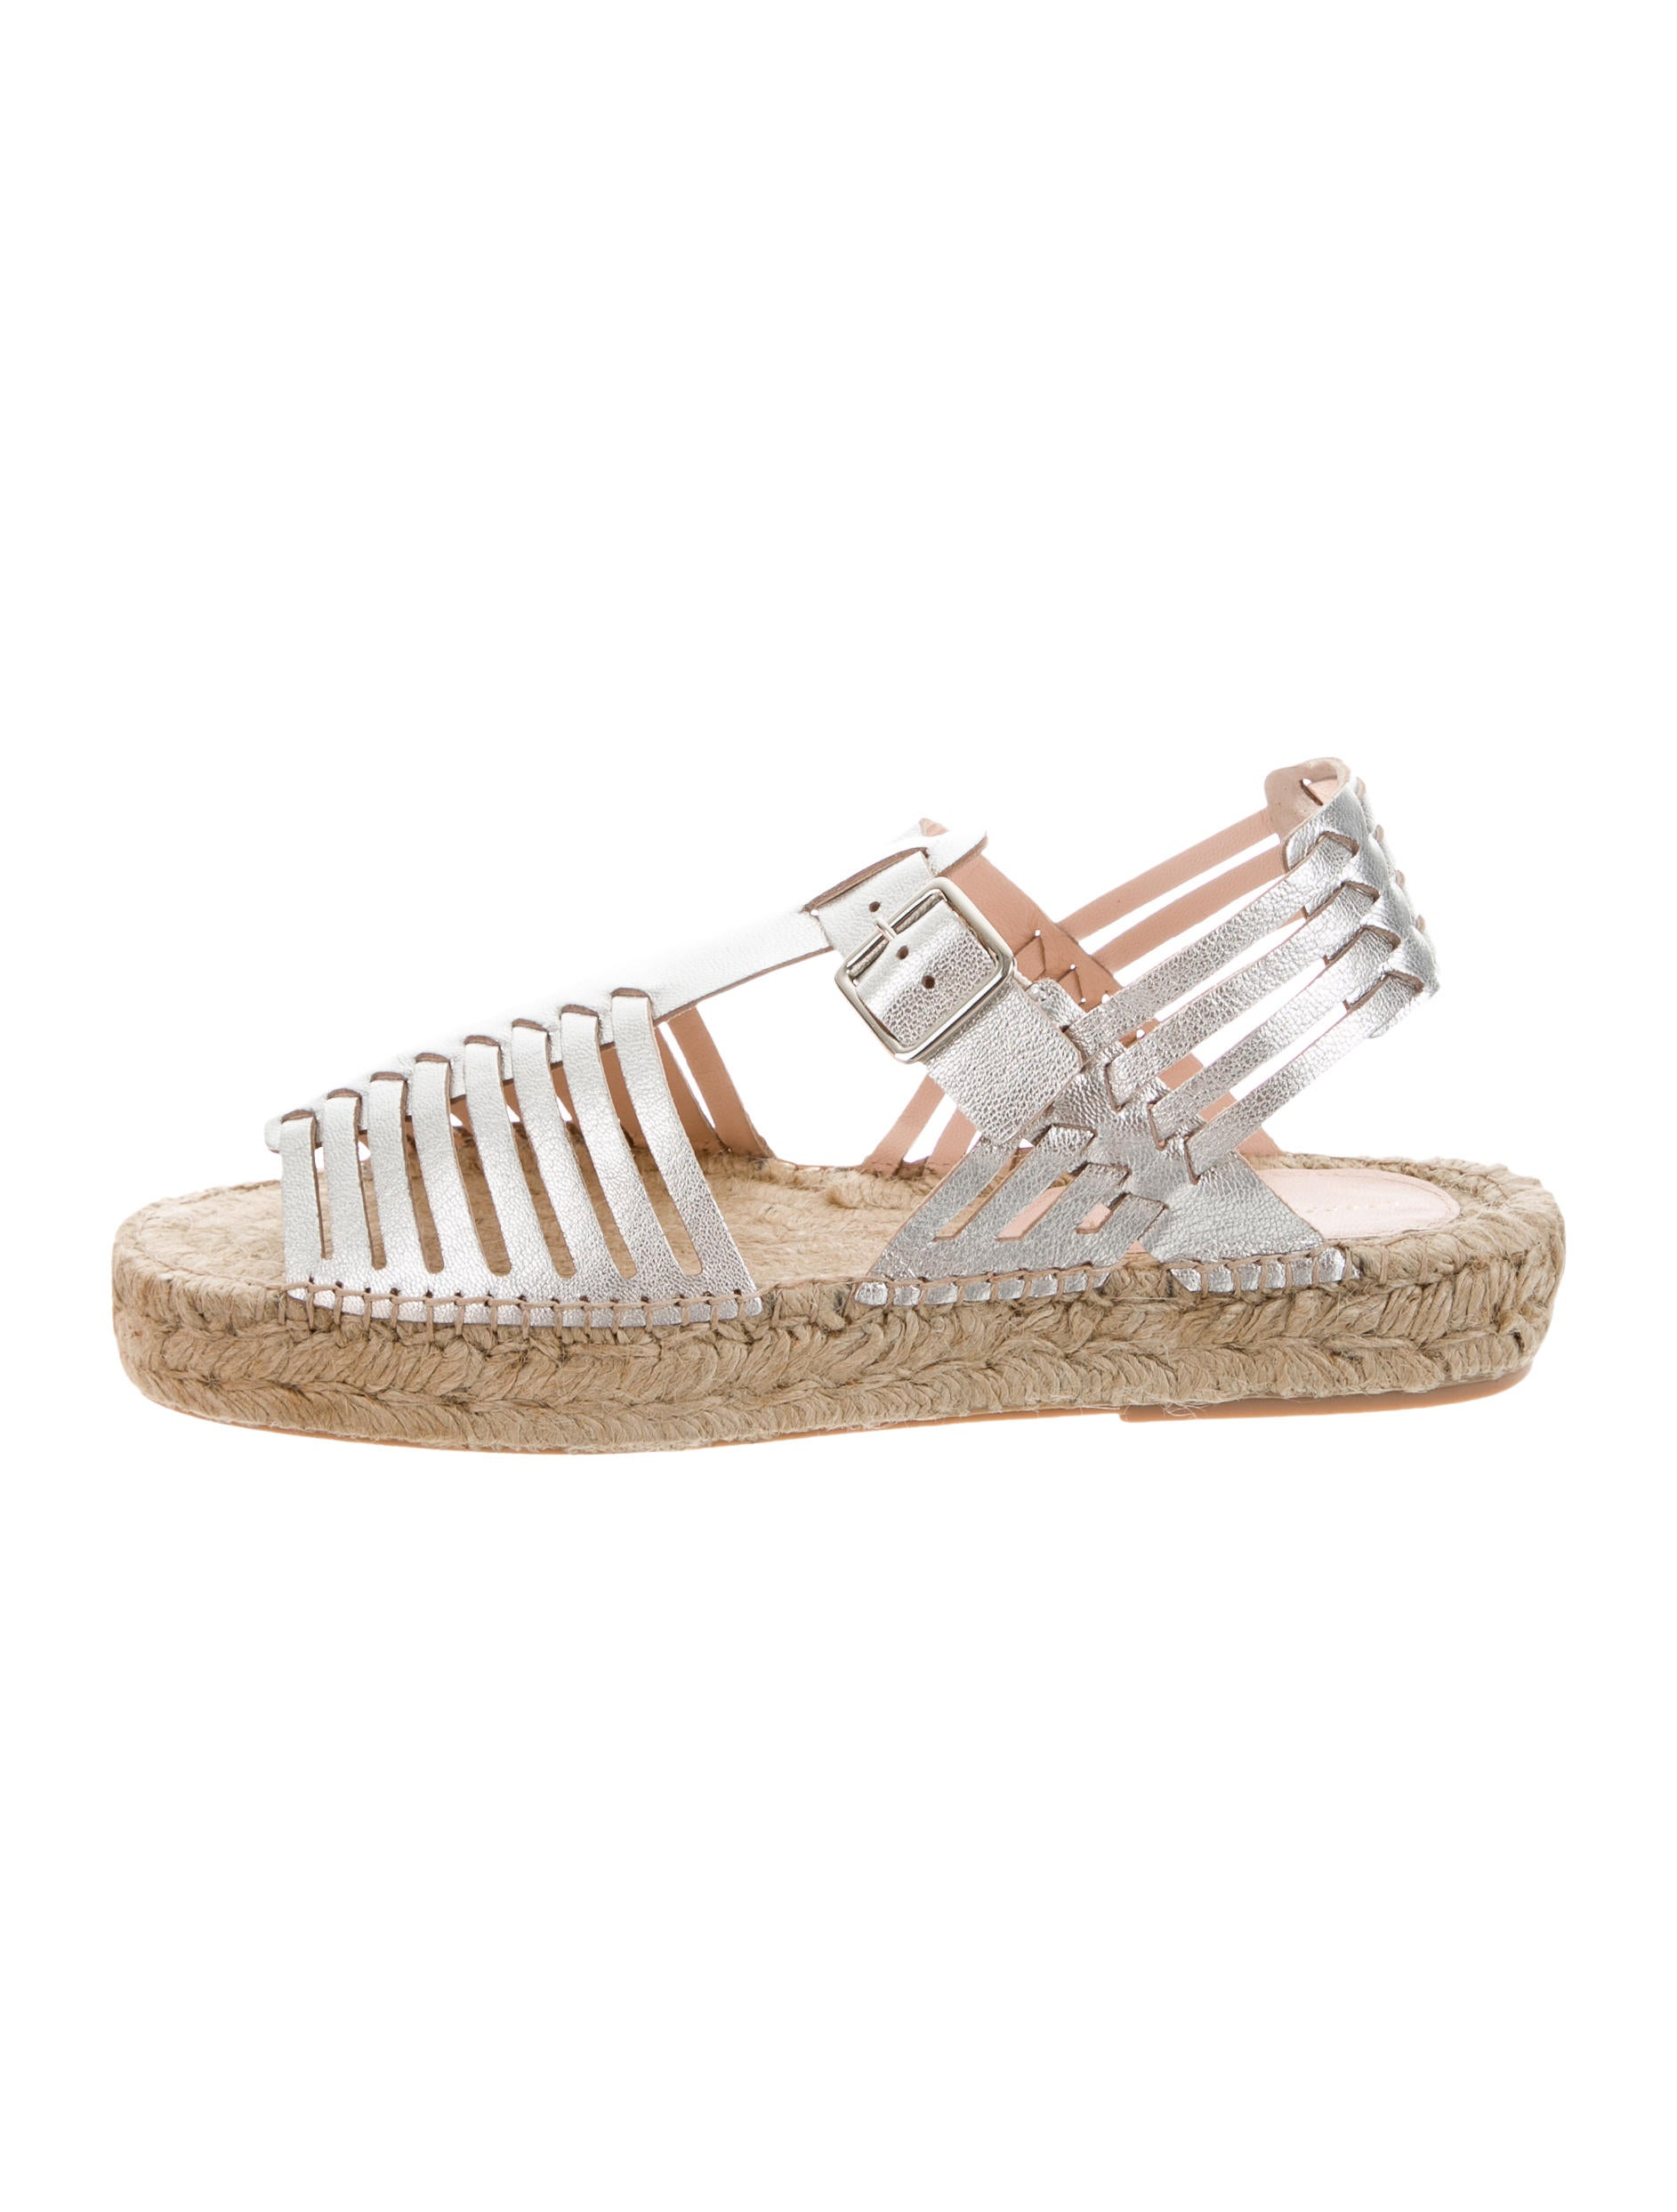 Loeffler Randall Leather Reid Espadrilles w/ Tags how much sale online sale official xNXS7